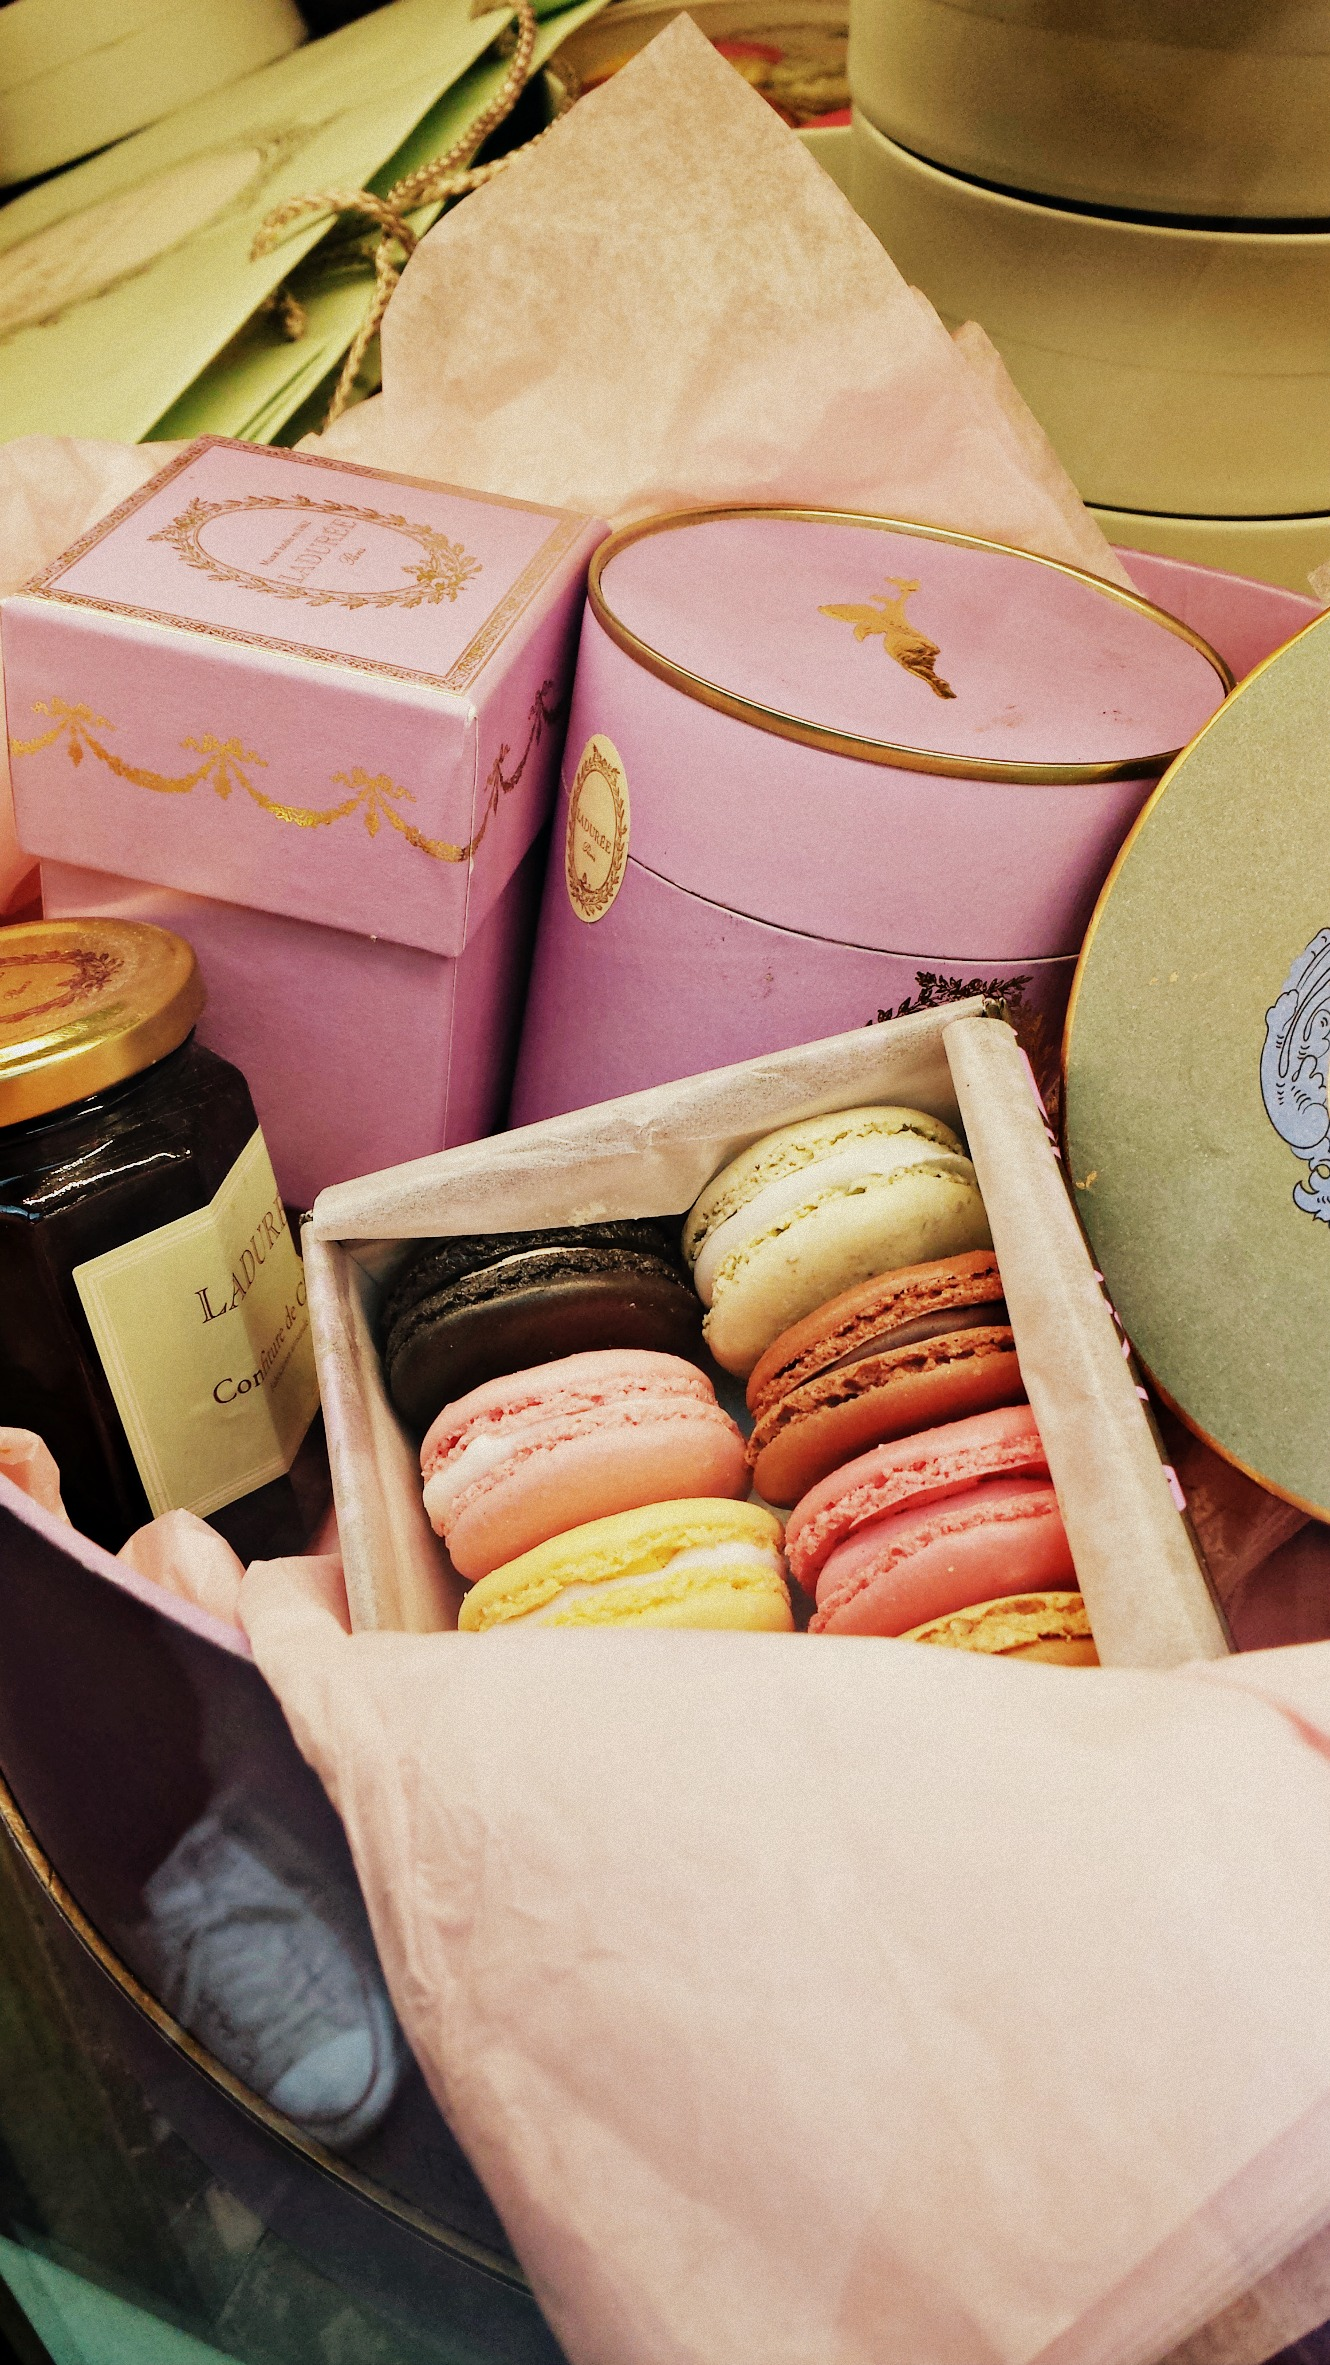 Window display in Laduree, home of the French macaron